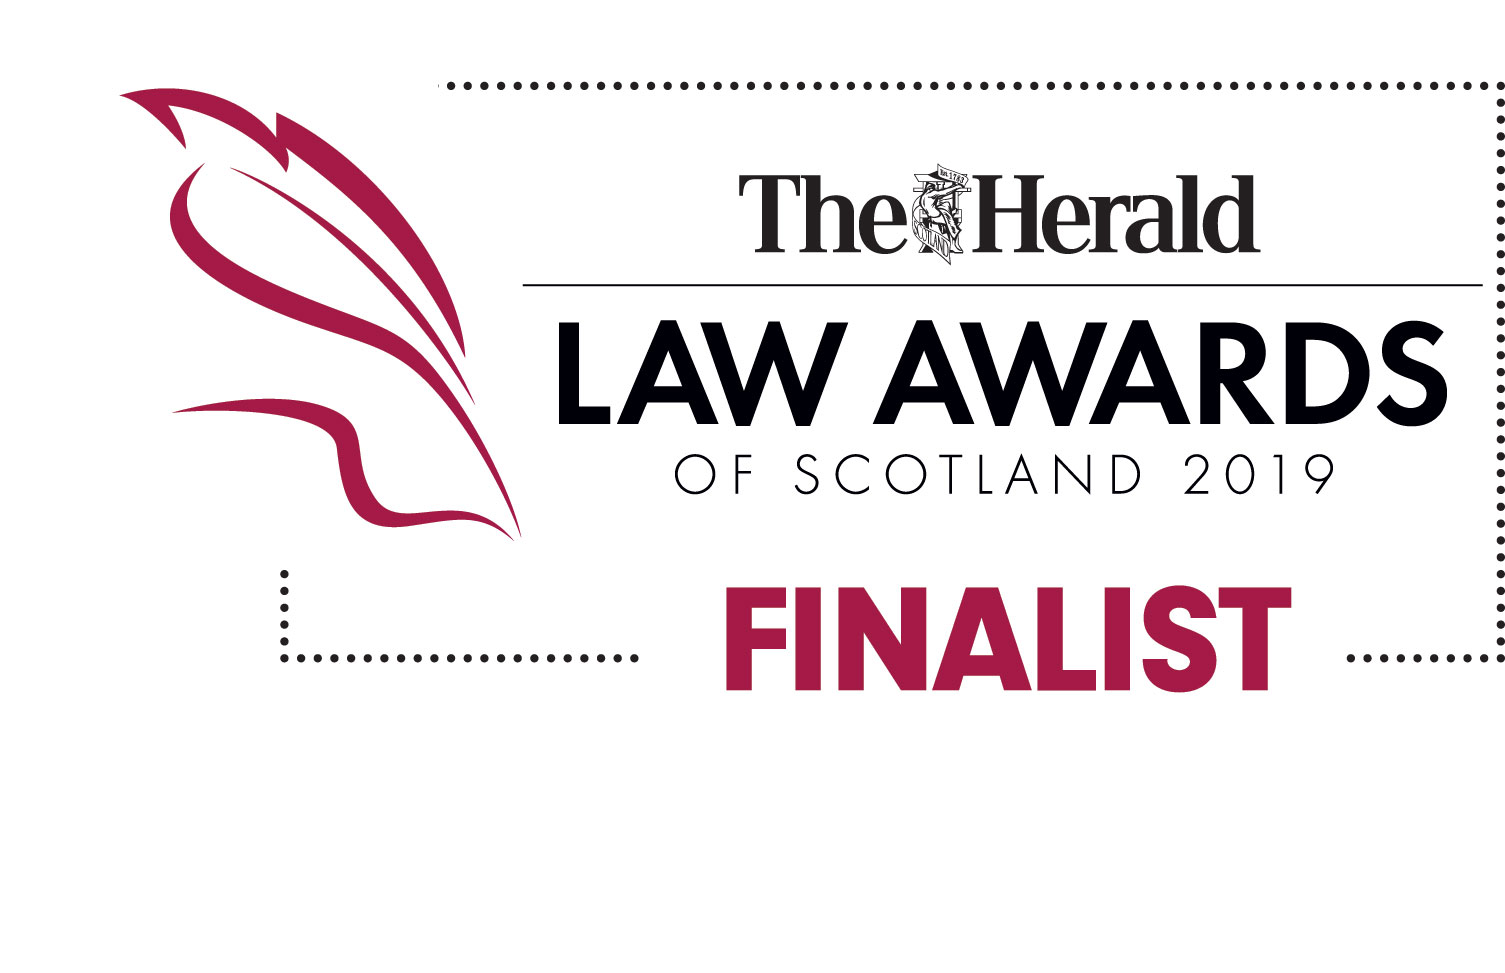 Herald Law Awards 2019 Finalist